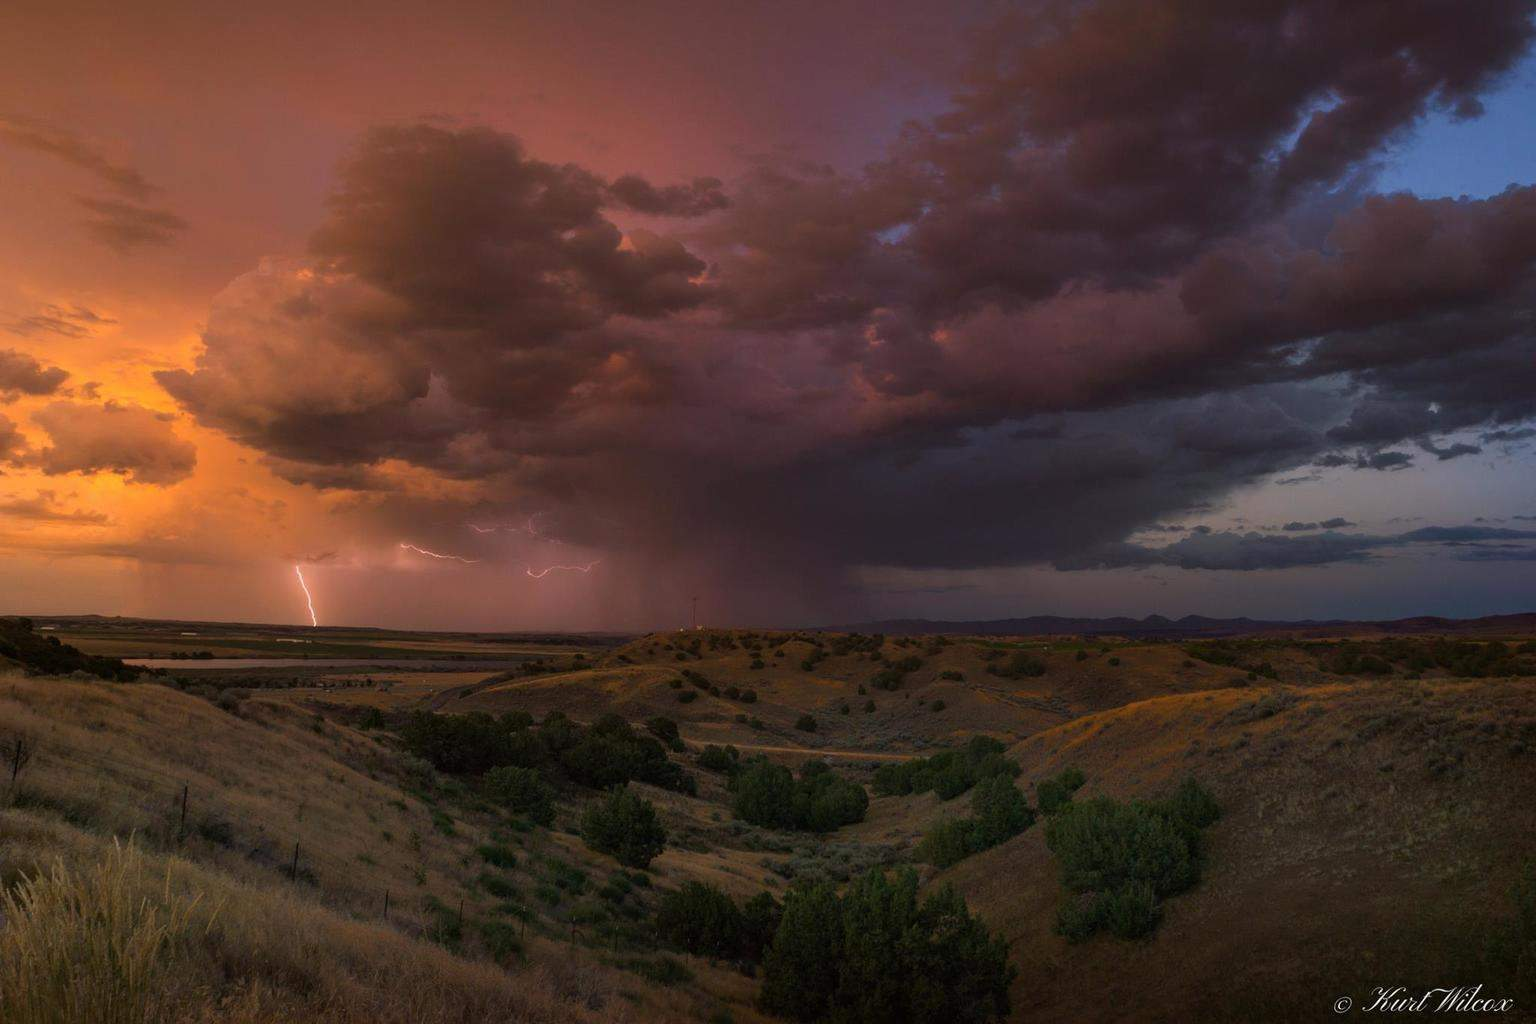 8/14/2014 Raft River Idaho, This storm produced a small tornado as it moved across the desert towards atomic city.